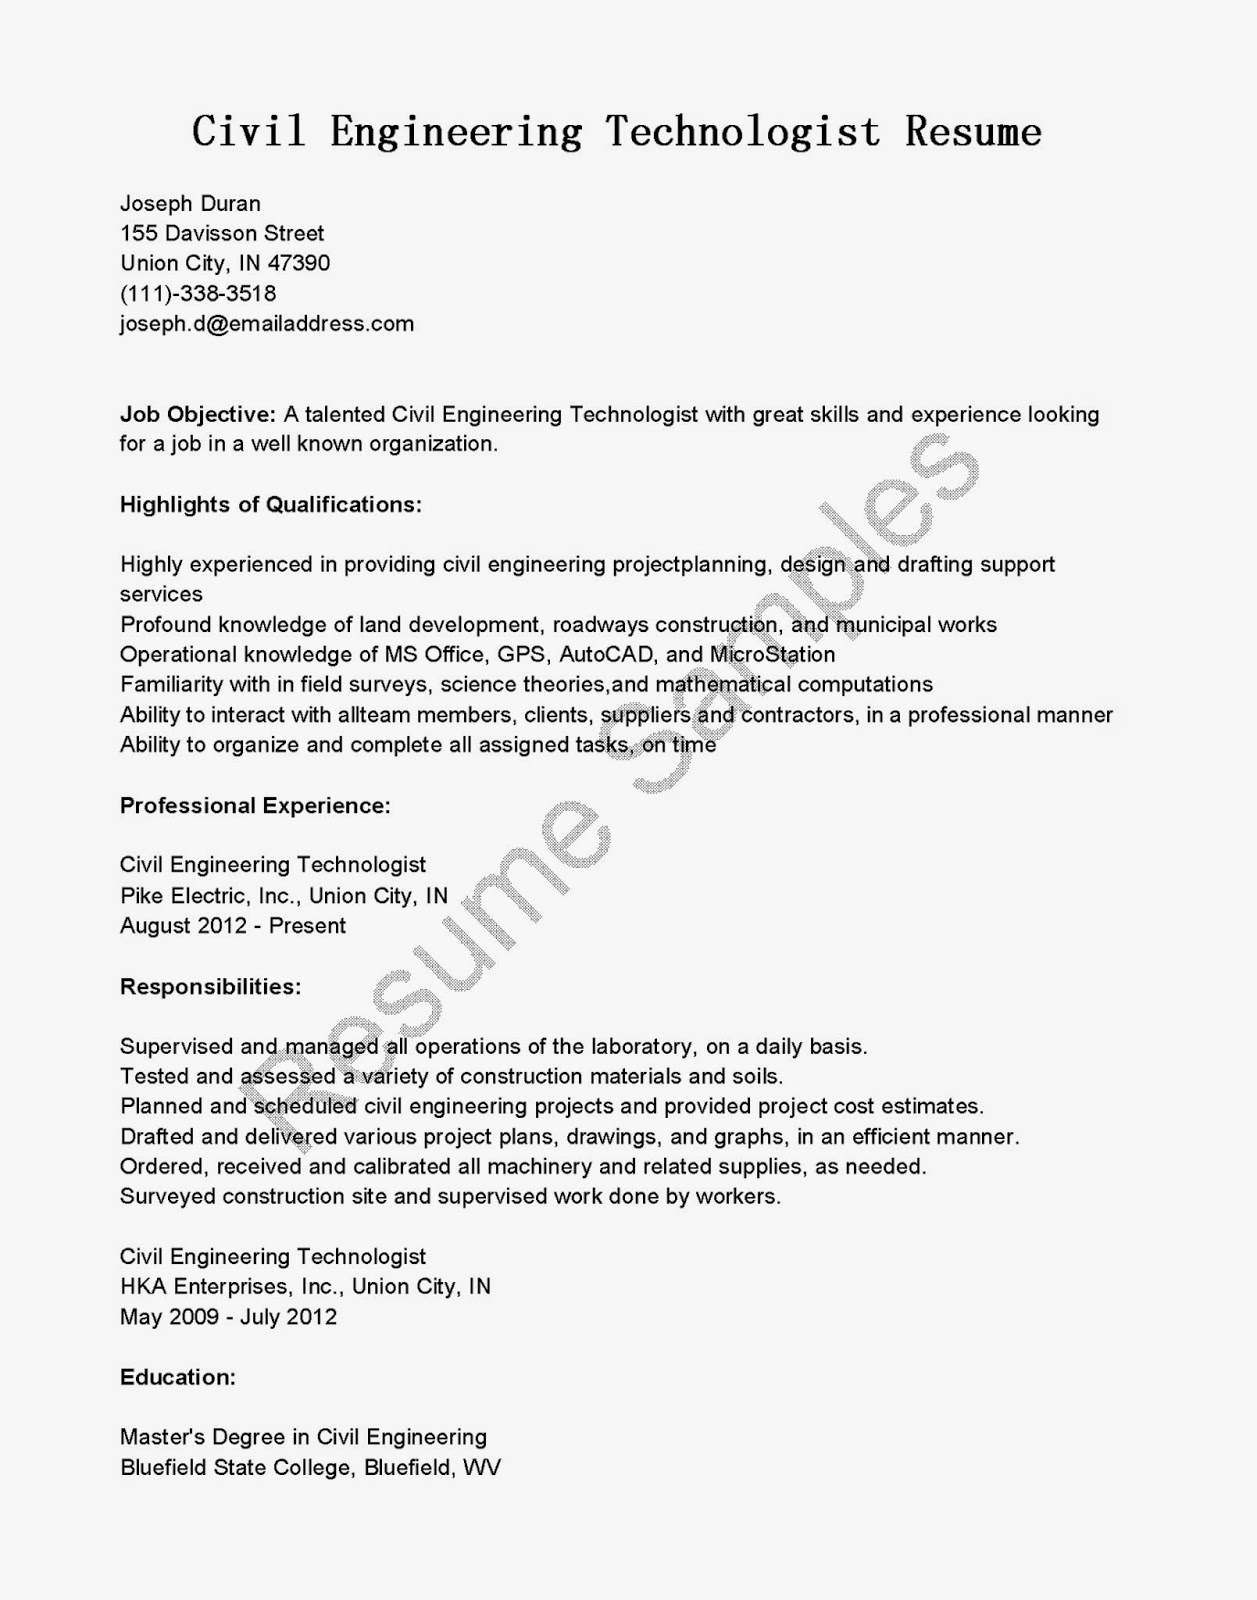 Civil Engineering Resume Sample